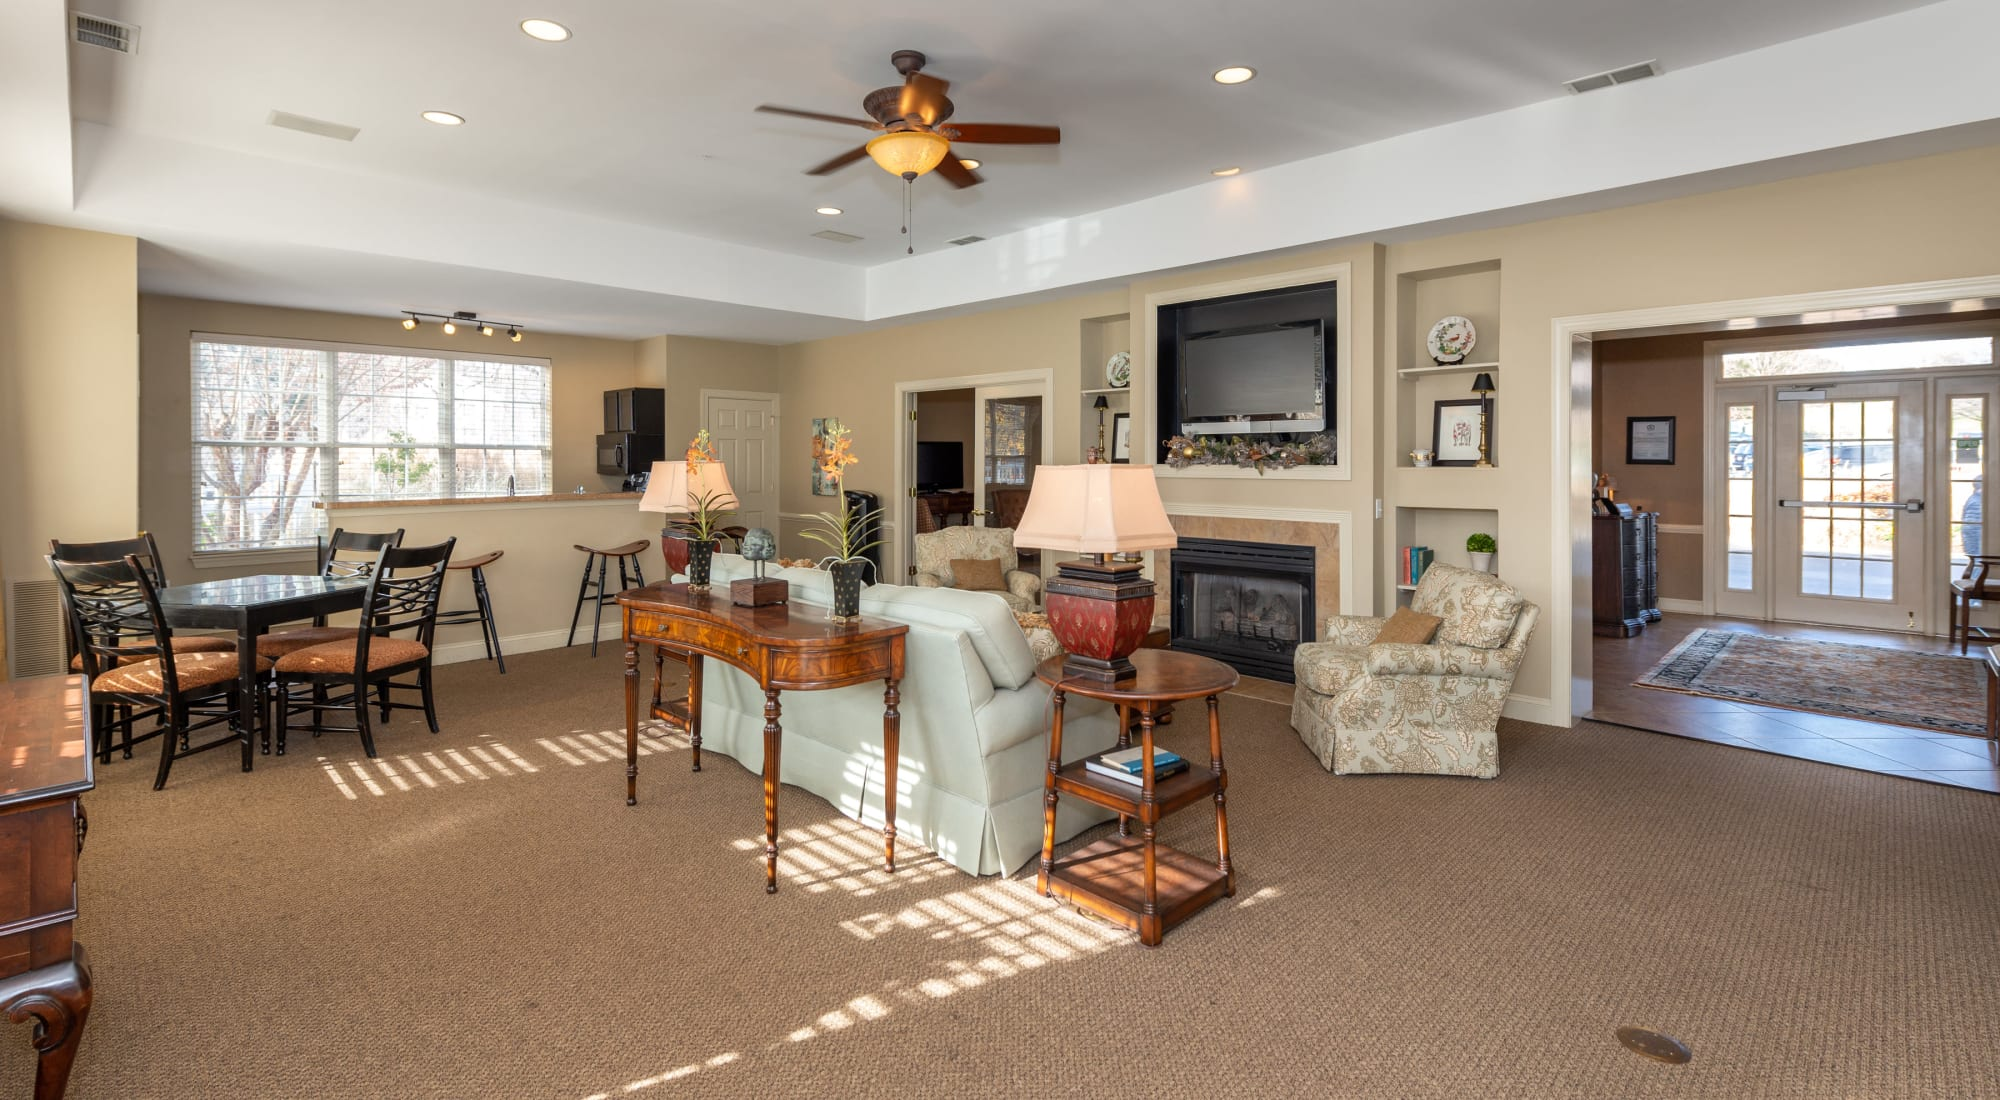 Spacious resident lounge with a flat-screen TV and fireplace at The Overlook at Stonemill in Lynchburg, Virginia